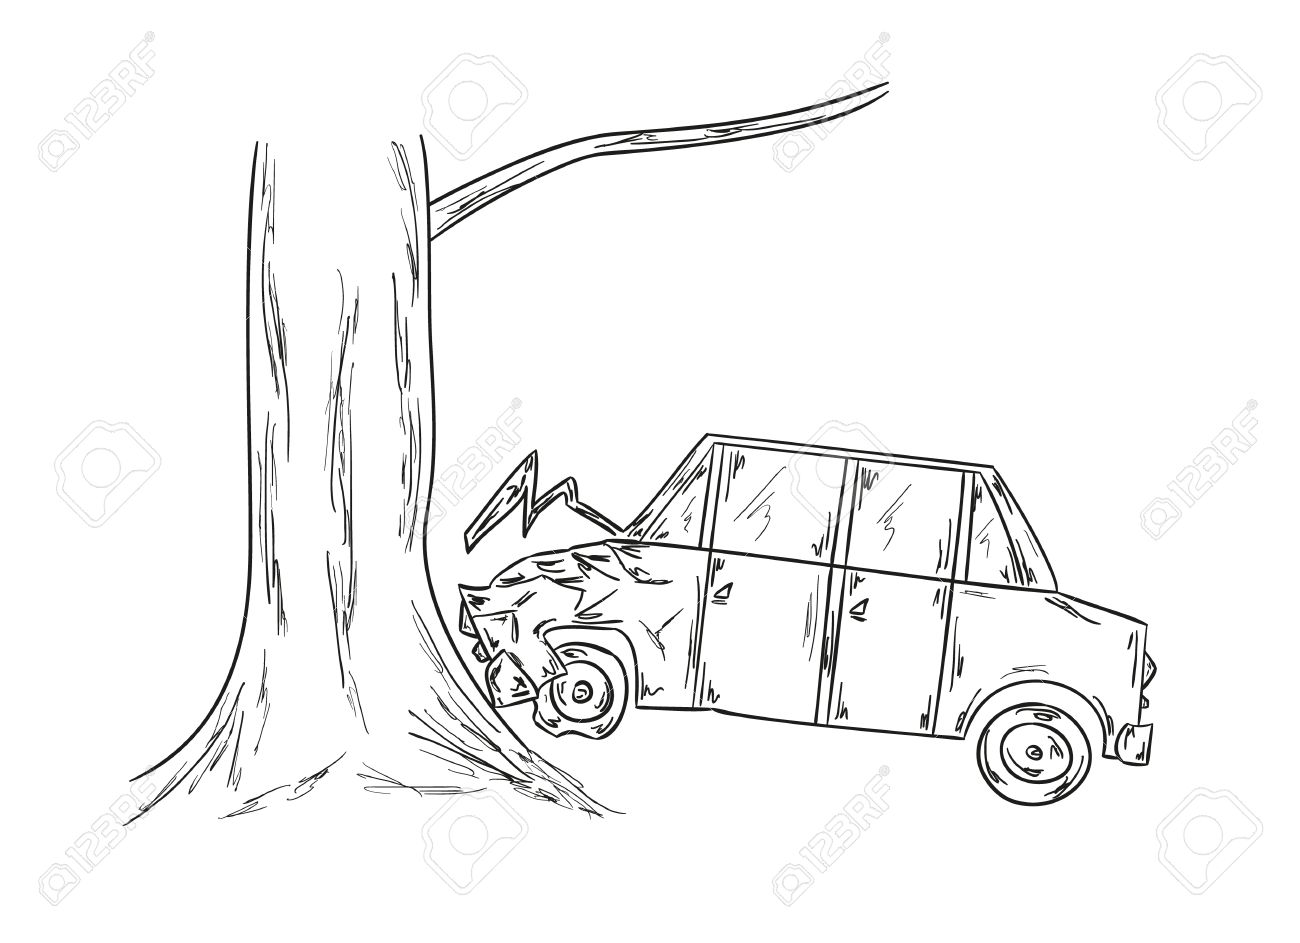 Sketch Of The Car And Tree, Accident Royalty Free Cliparts, Vectors ...